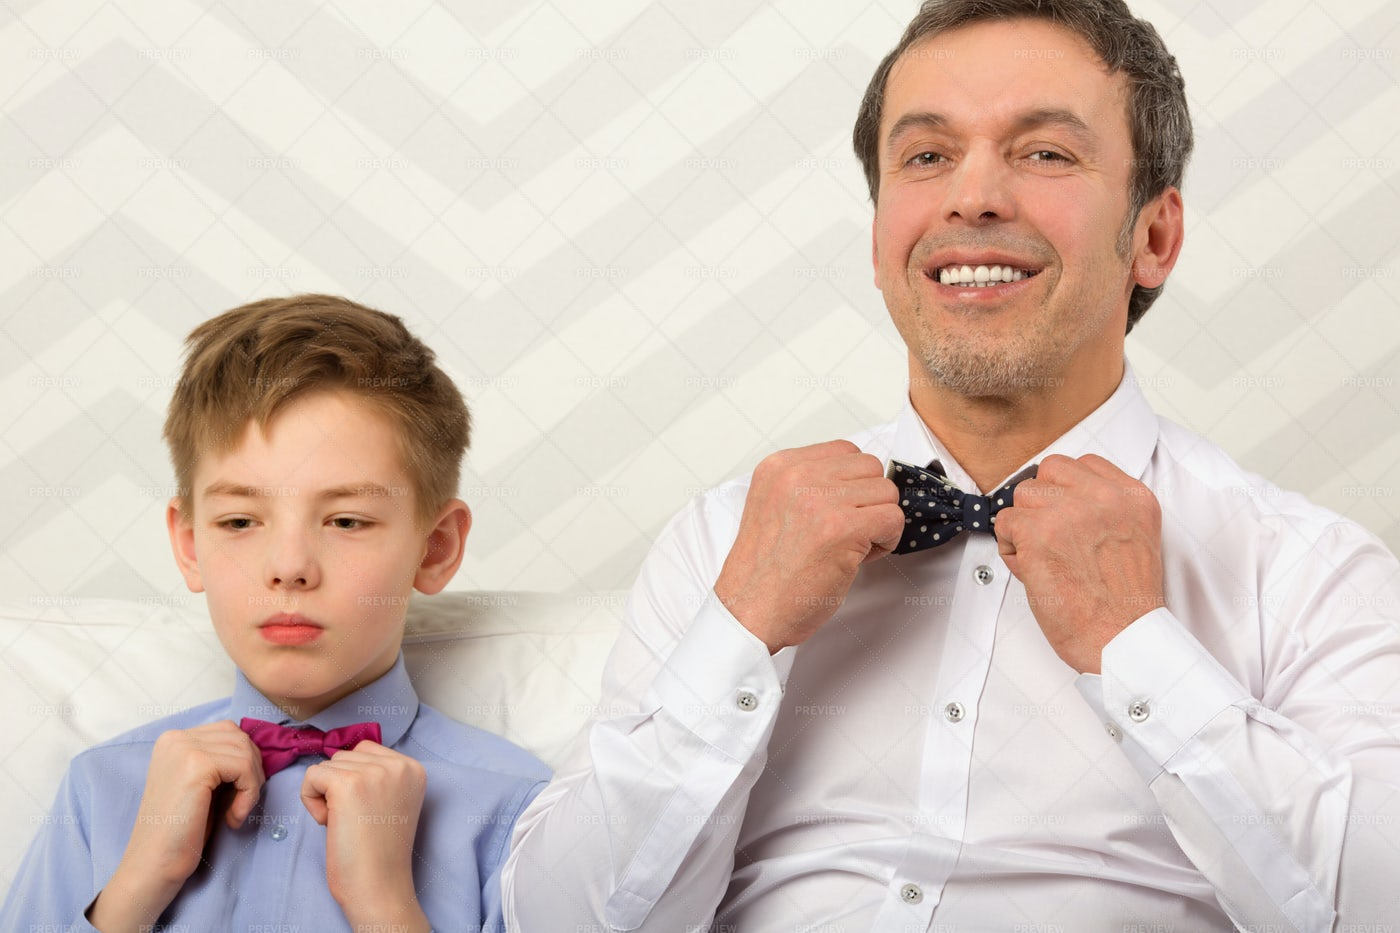 Father And Son Adjust Bowties: Stock Photos